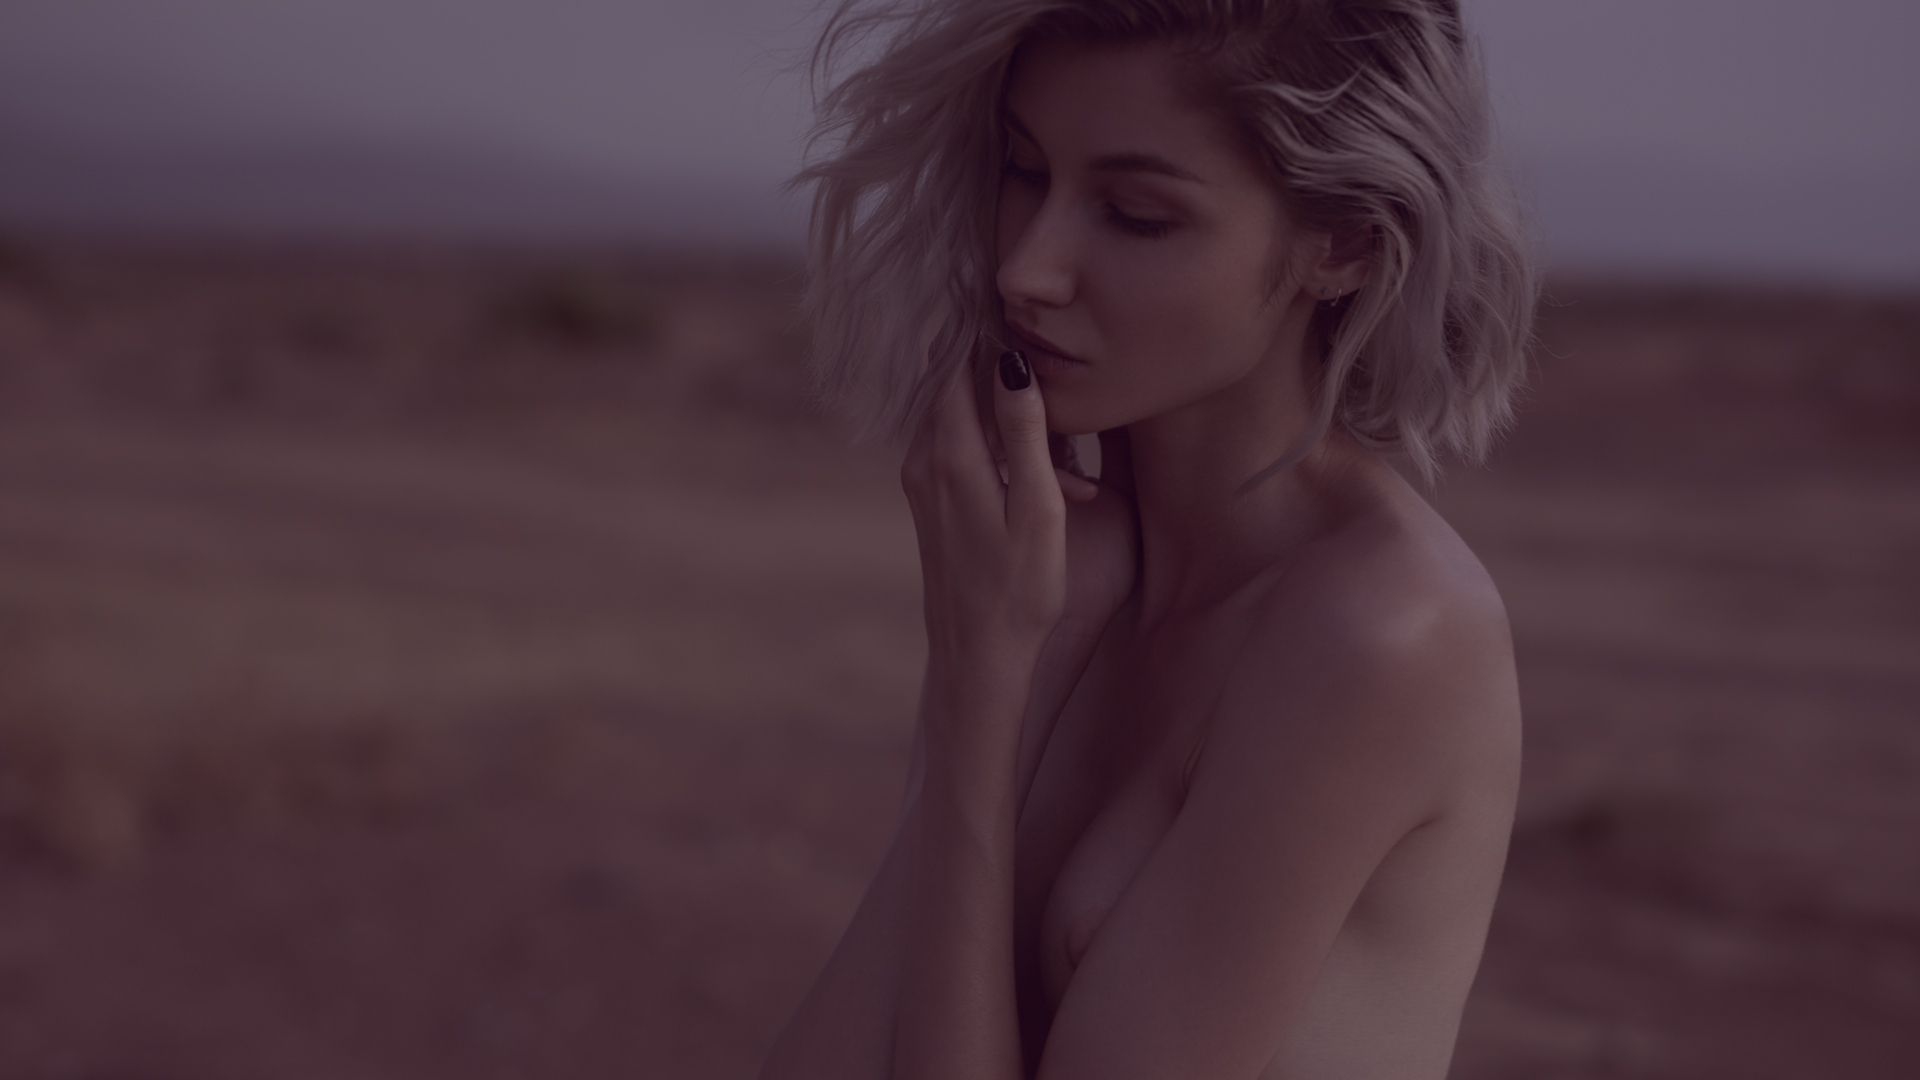 desert american wild nude frederic mercier photographer one color